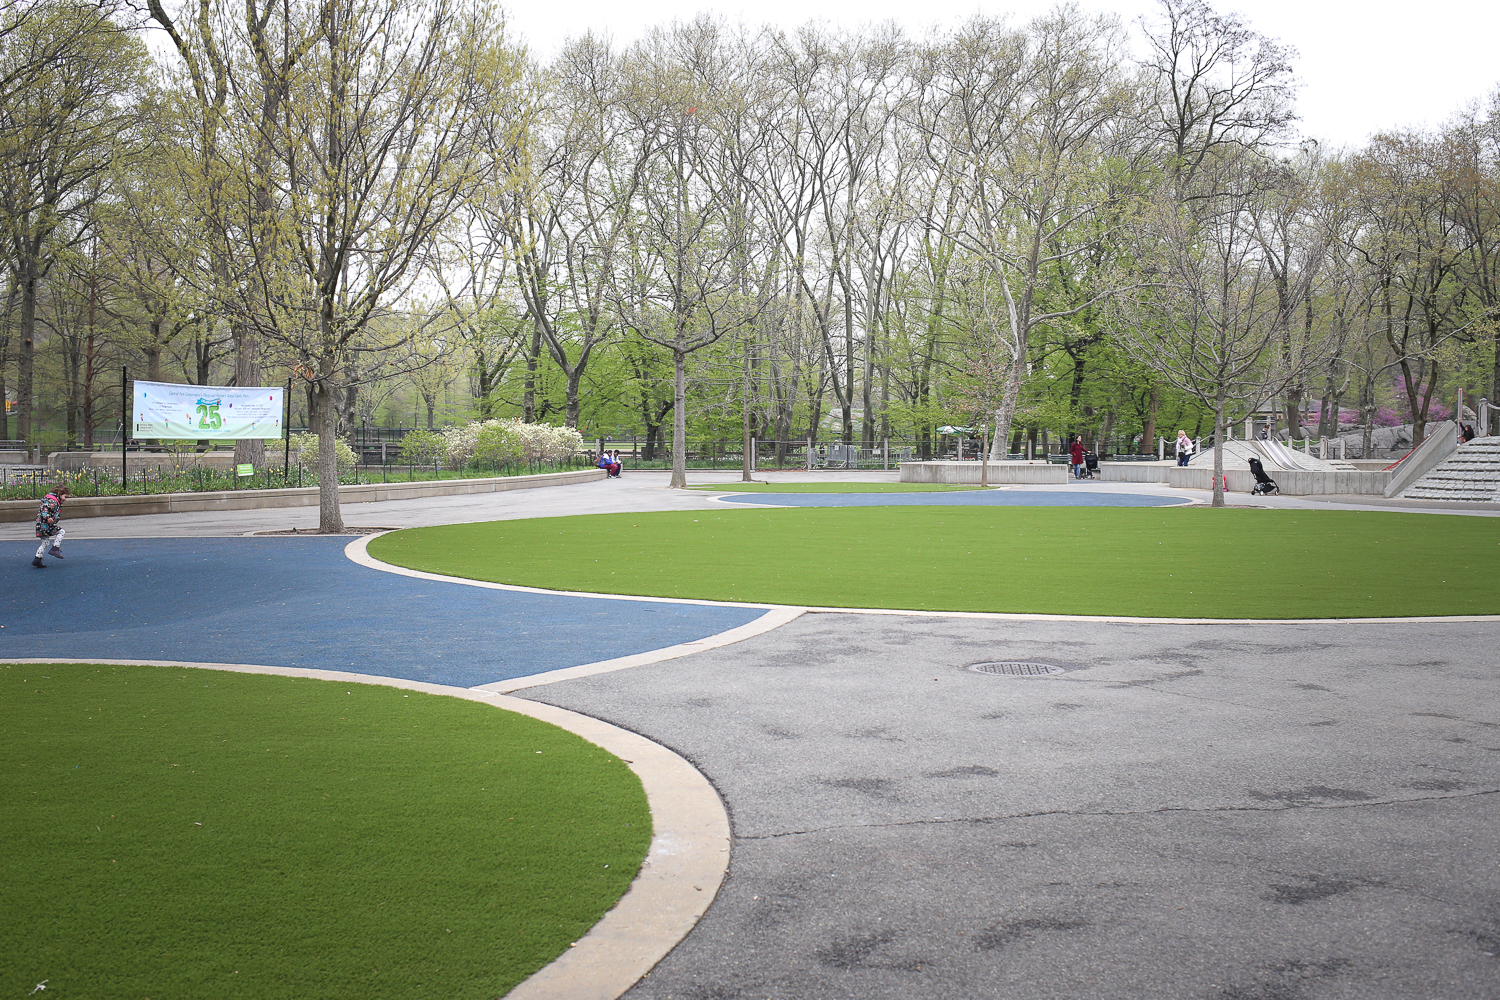 Play space and green space in the middle of New York City's Central Park!